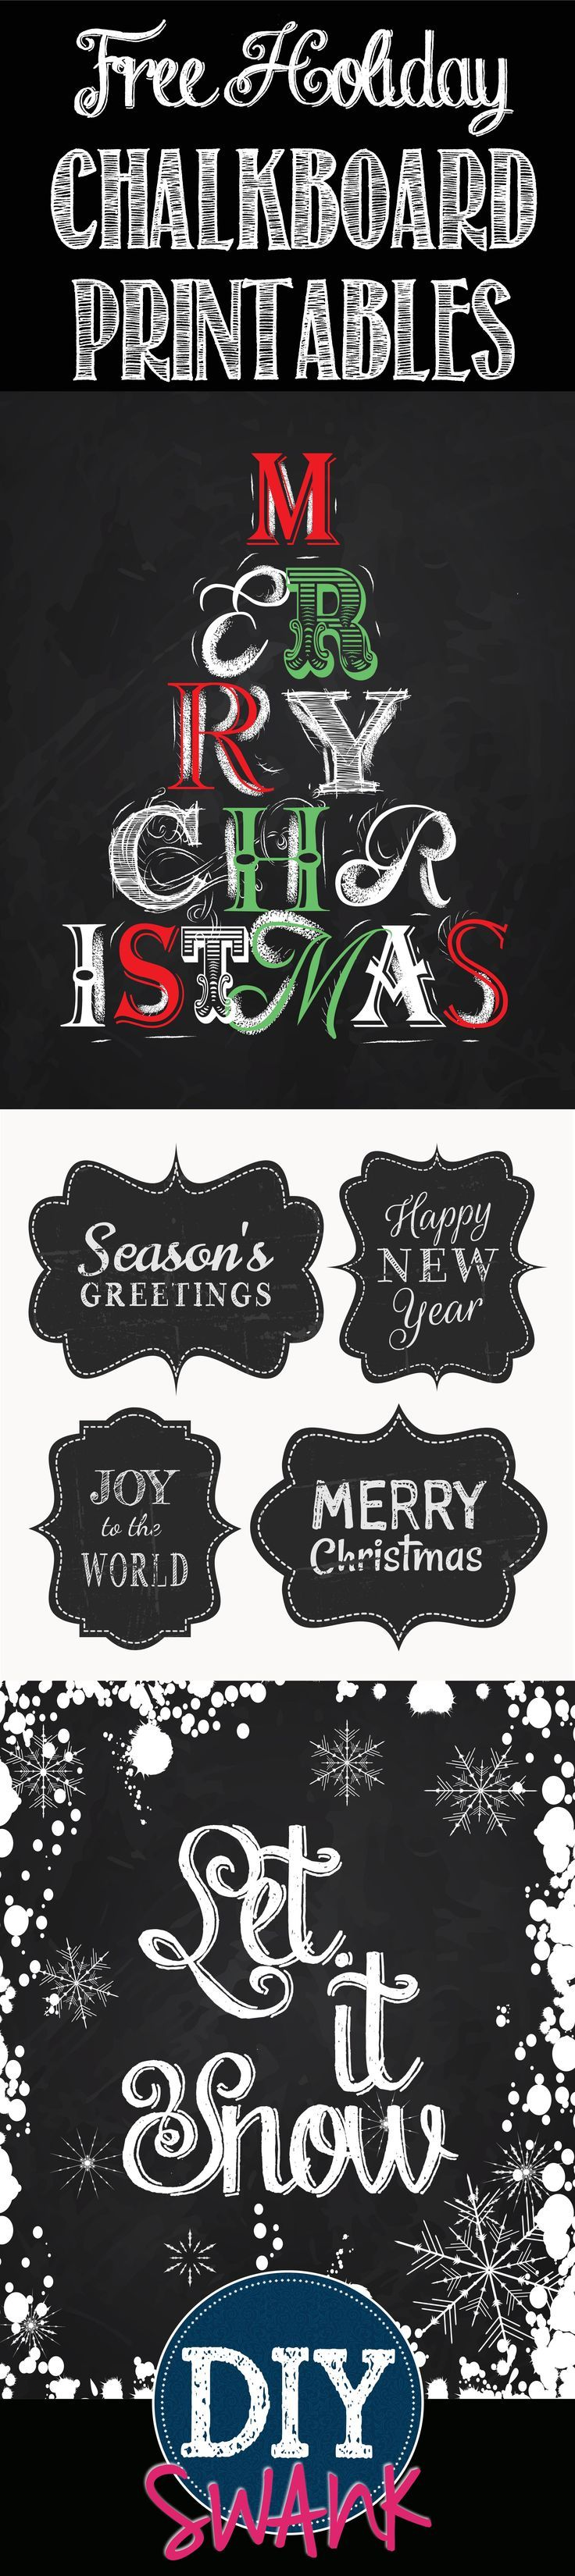 Free Holiday Chalkboard Printables